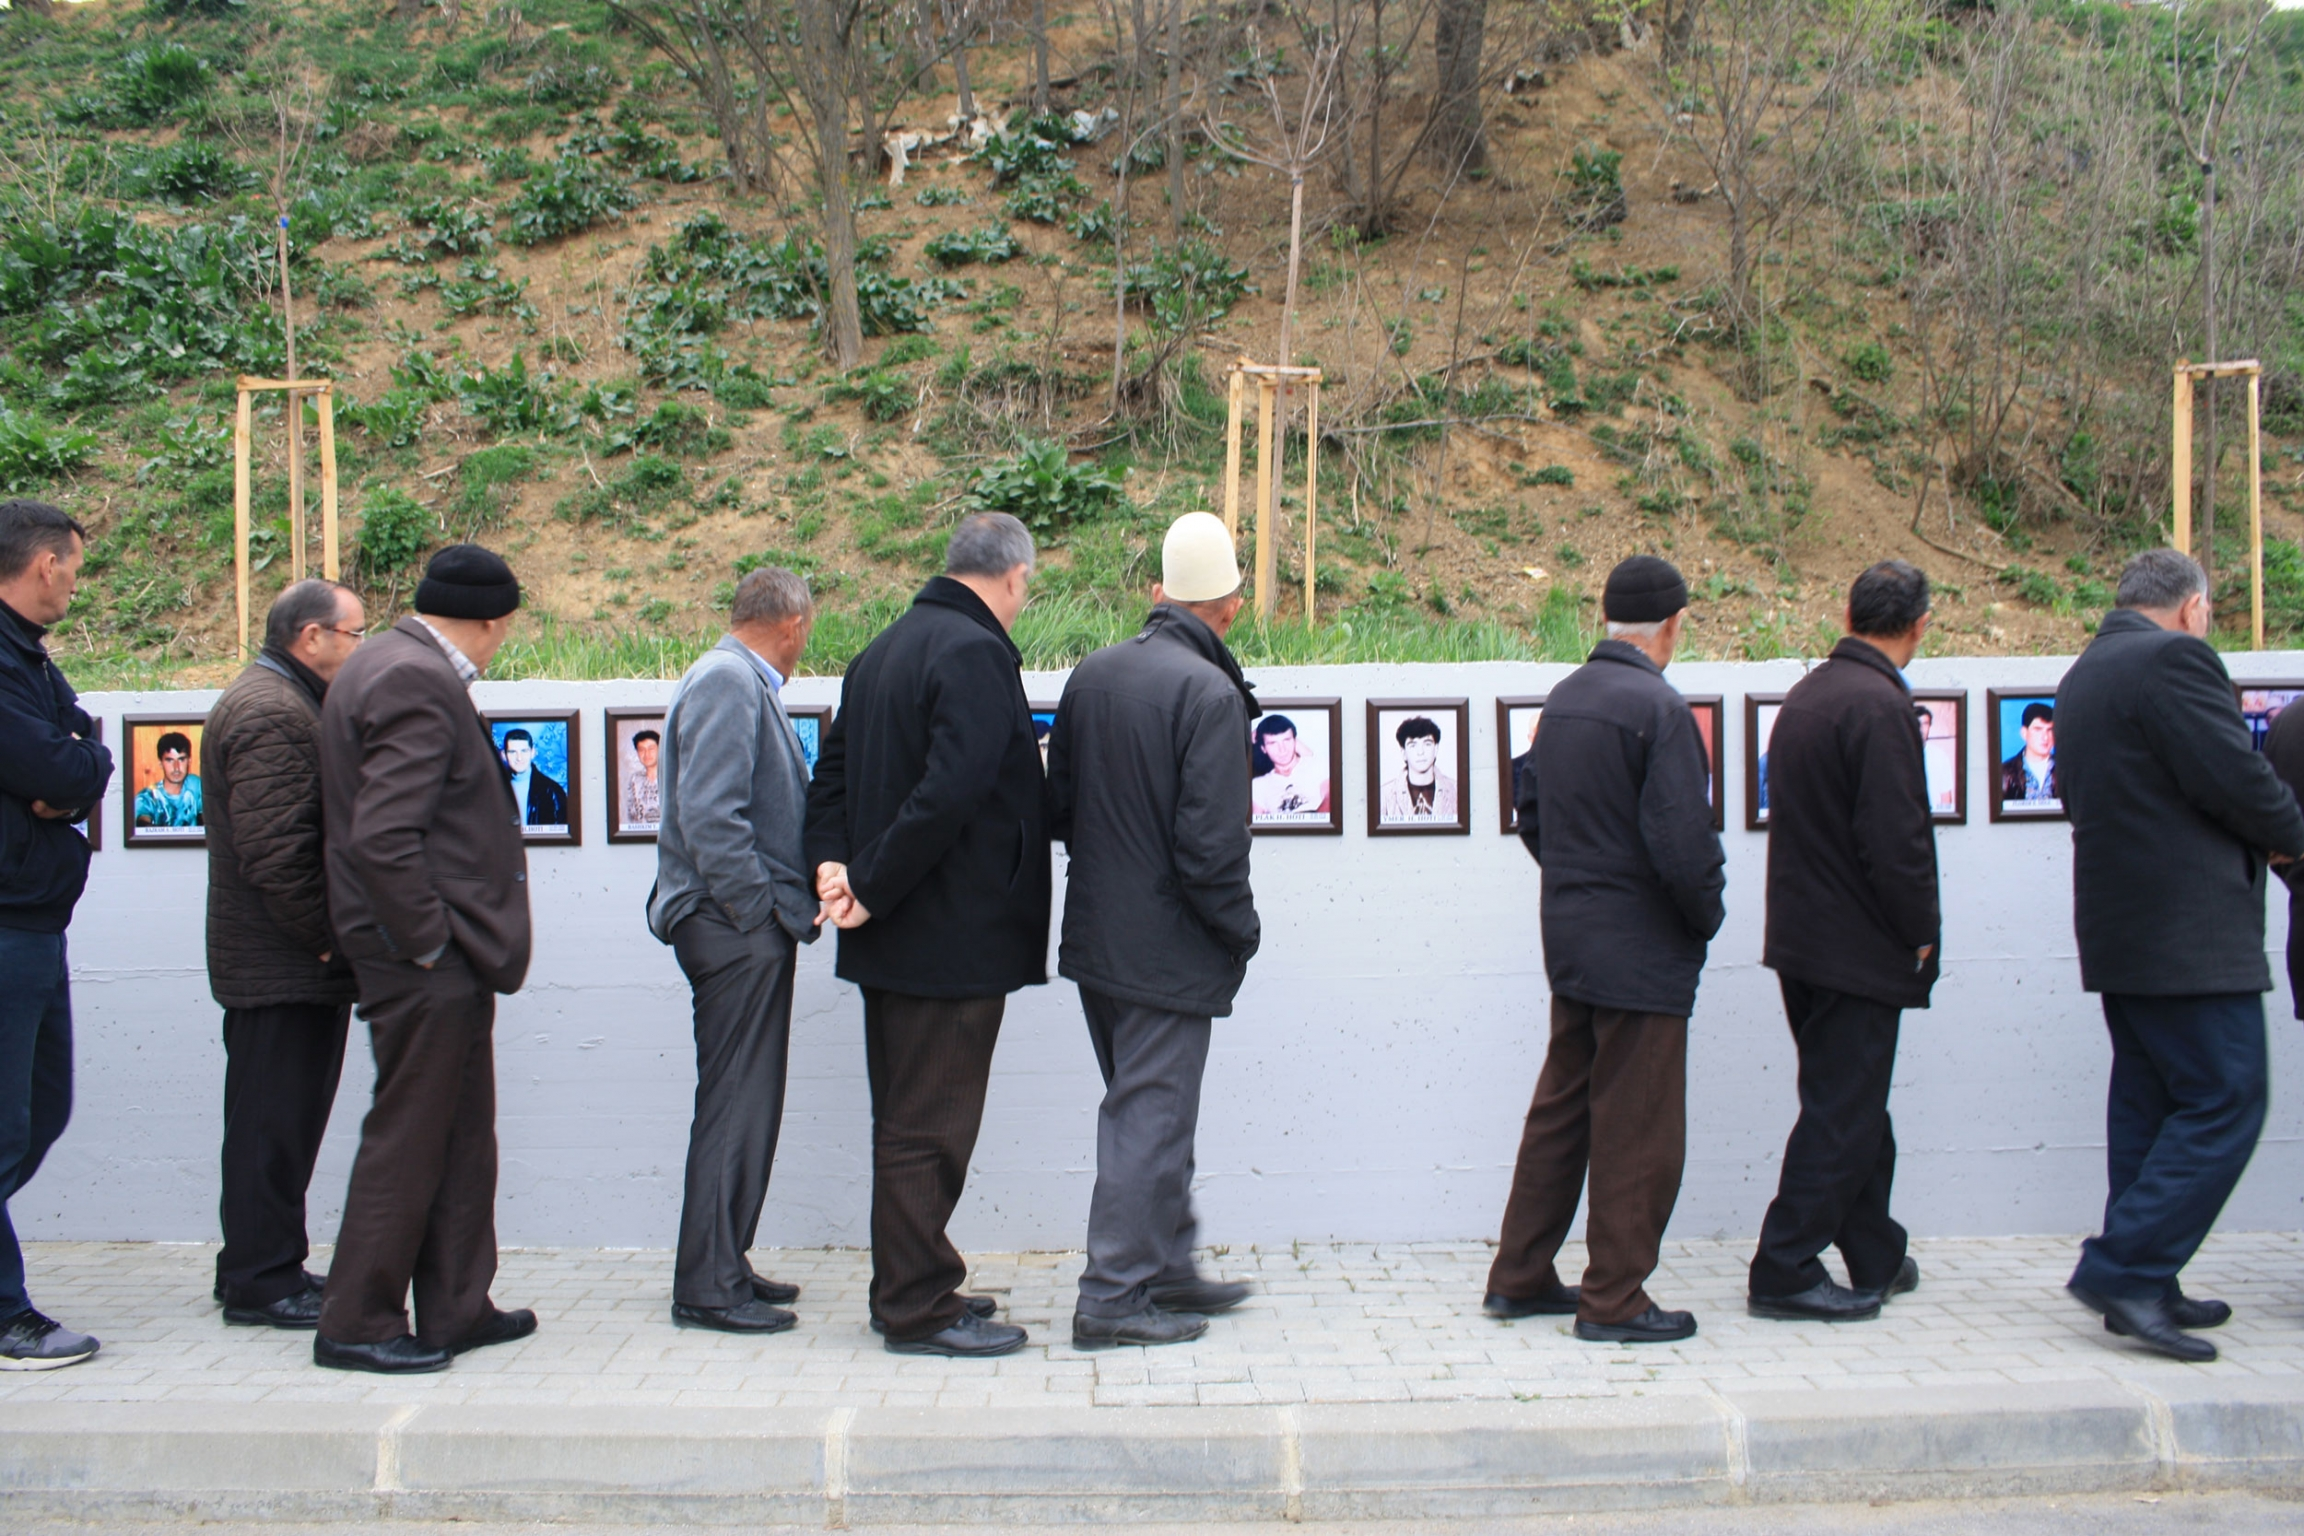 A line of men are shown standing next to a wall with photographs posted on it.